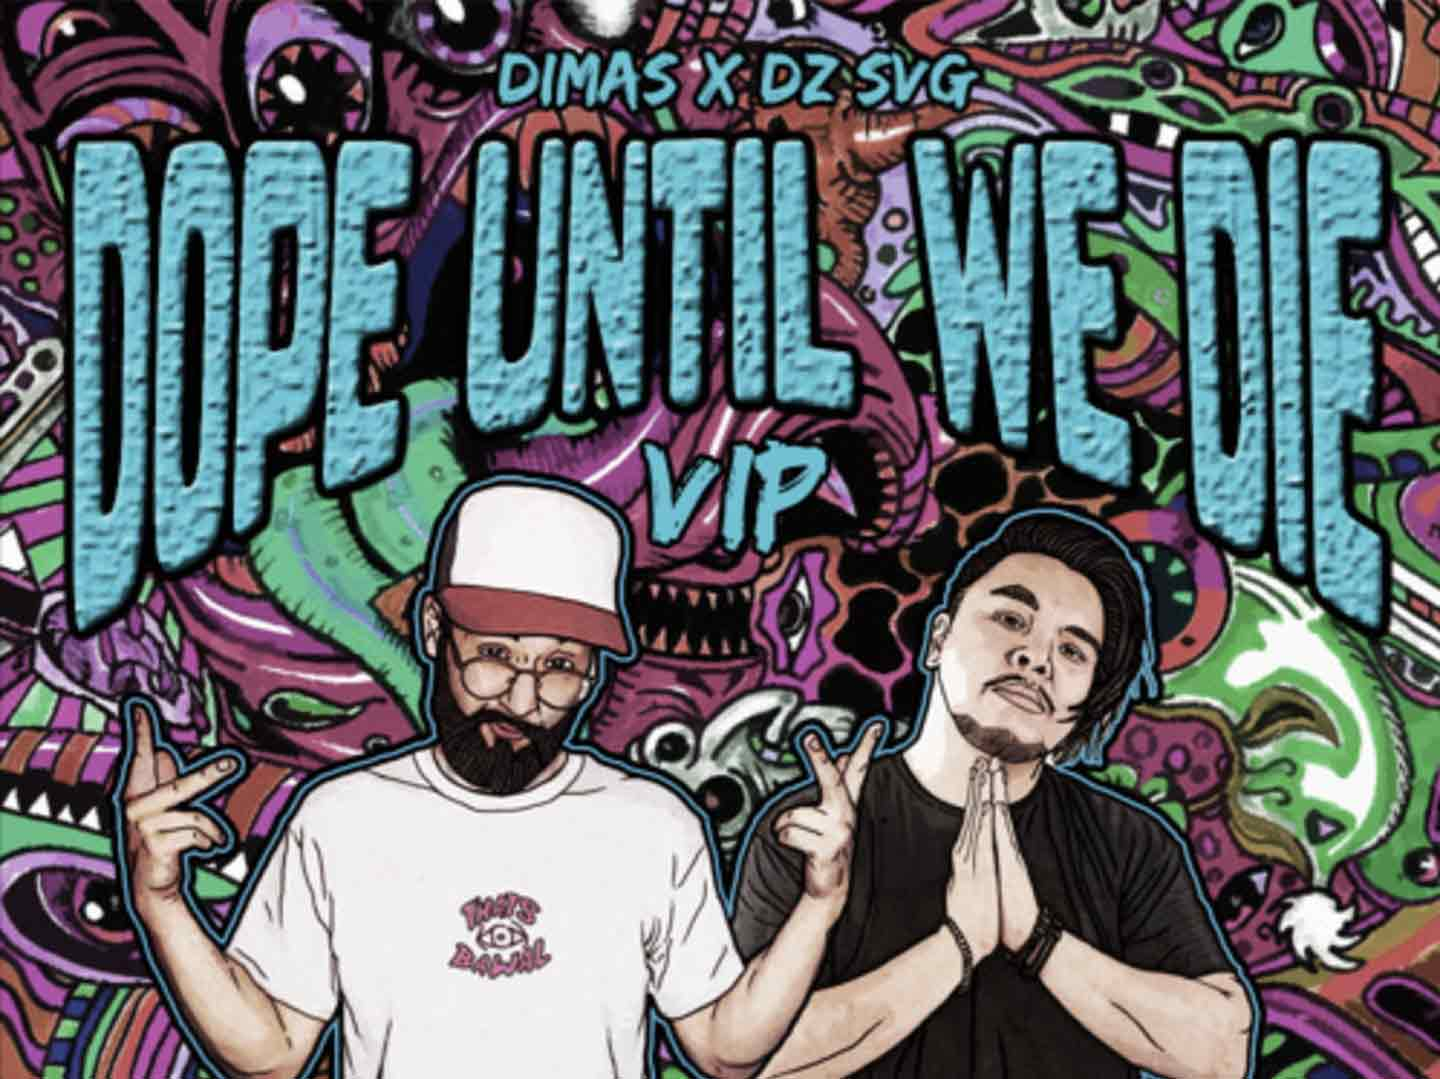 Dino Imperial DZ SVG and DIMAS for DUWD